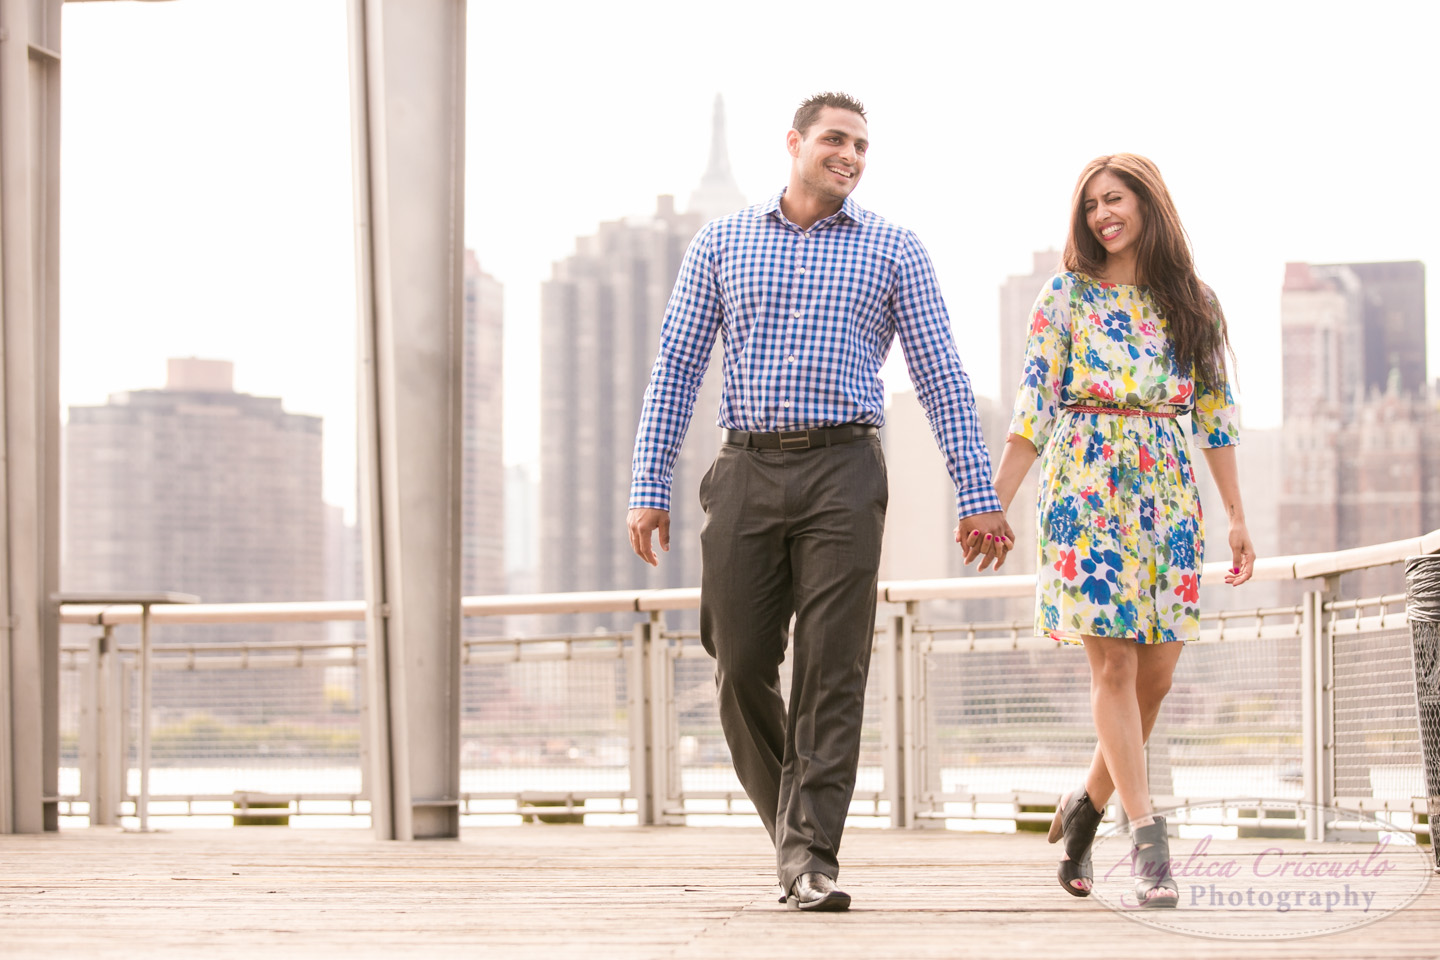 New_York_Engagement_Photography_LIC_Queens_Gantry_Hindu_WeddingW-41